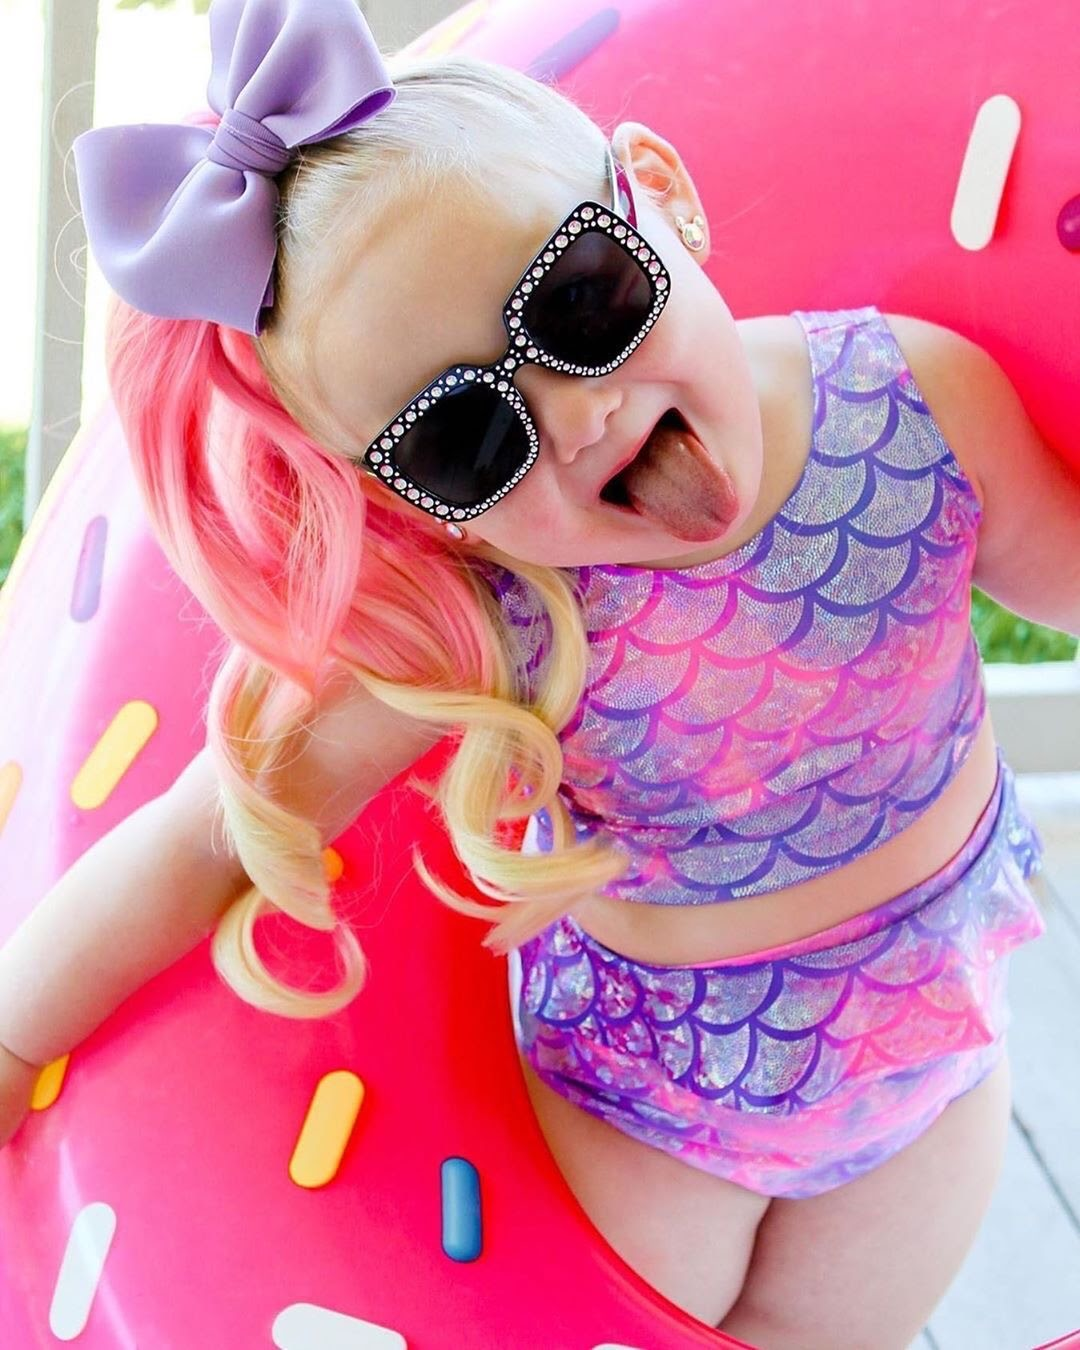 Young girl modeling her Cupcake Maggic Tail ponytail extension in bright pink and blonde